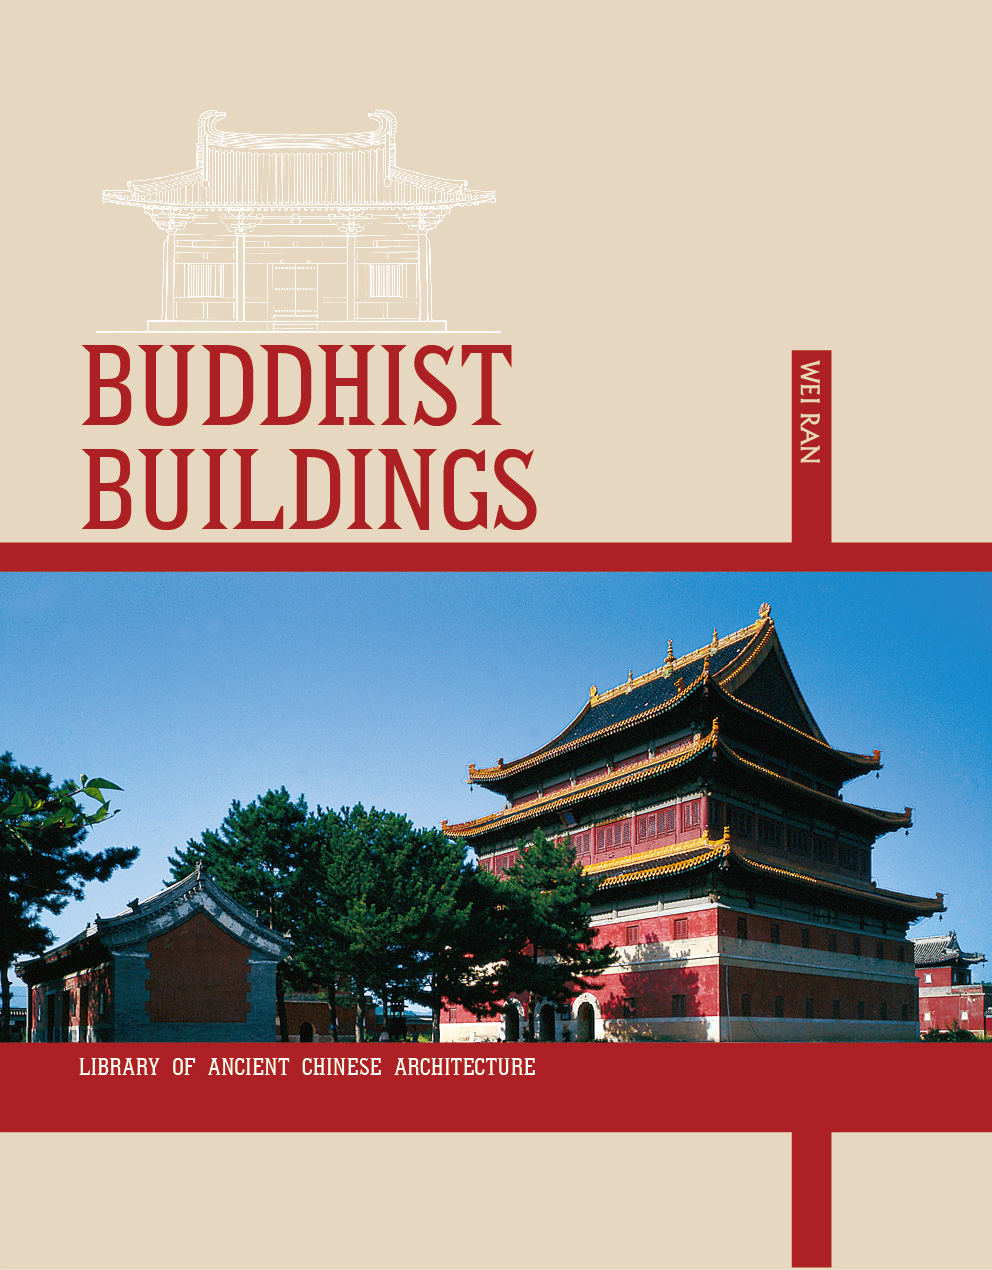 library of ancient chinese architecture times media group inc